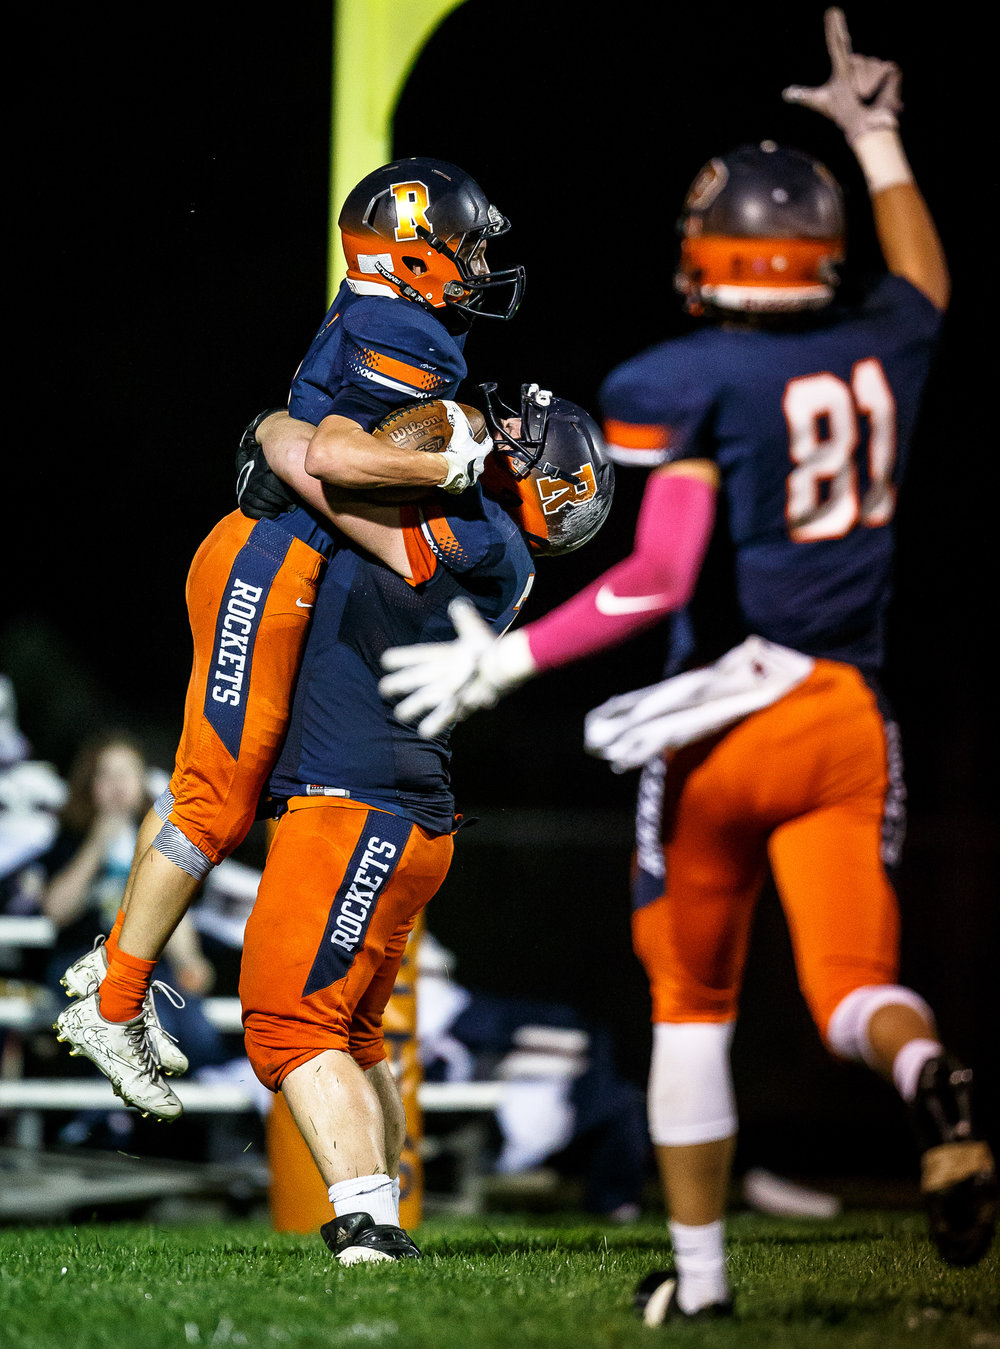 Rochester's Riley Lewis (1) is hoisted up by Rochester's Clay Johnson (71) to celebrate his touchdown against Sacred Heart-Griffin in the first quarter at Rocket Booster Stadium, Friday, Oct. 6, 2017, in Rochester, Ill. [Justin L. Fowler/The State Journal-Register]